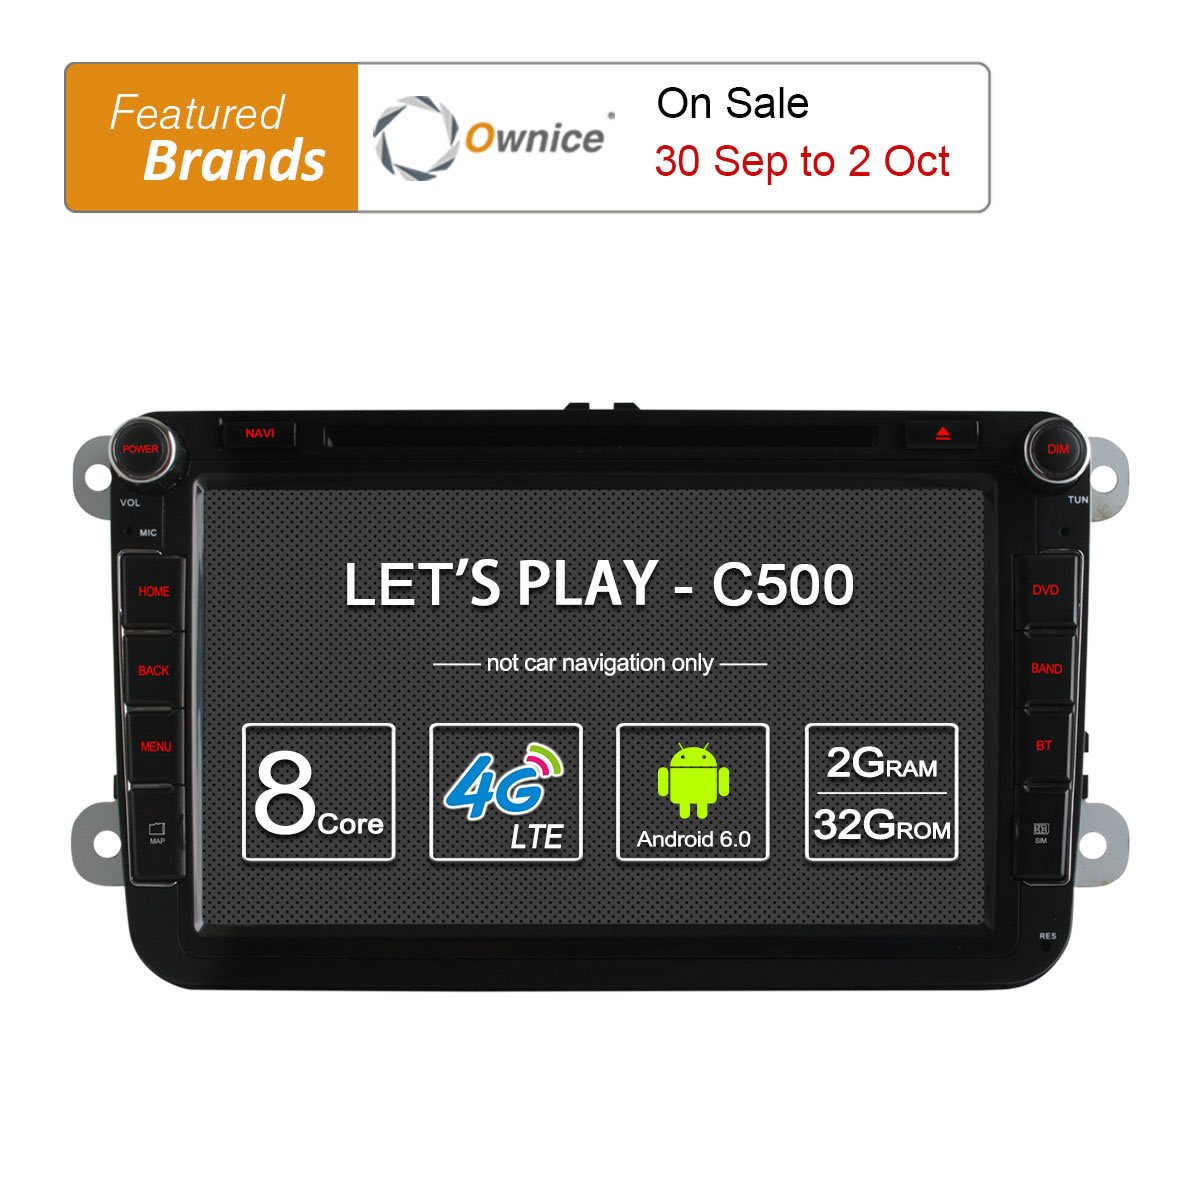 4G SIM LTE Network Ownice C500 Octa 8 Core Android 6.0 2G RAM 2 Din Car DVD GPS Navi Radio Player For VW Skoda Octavia 2 2 din quad core android 4 4 dvd плеер автомобиля для toyota corolla camry rav4 previa vios hilux прадо terios gps navi радио mp3 wi fi